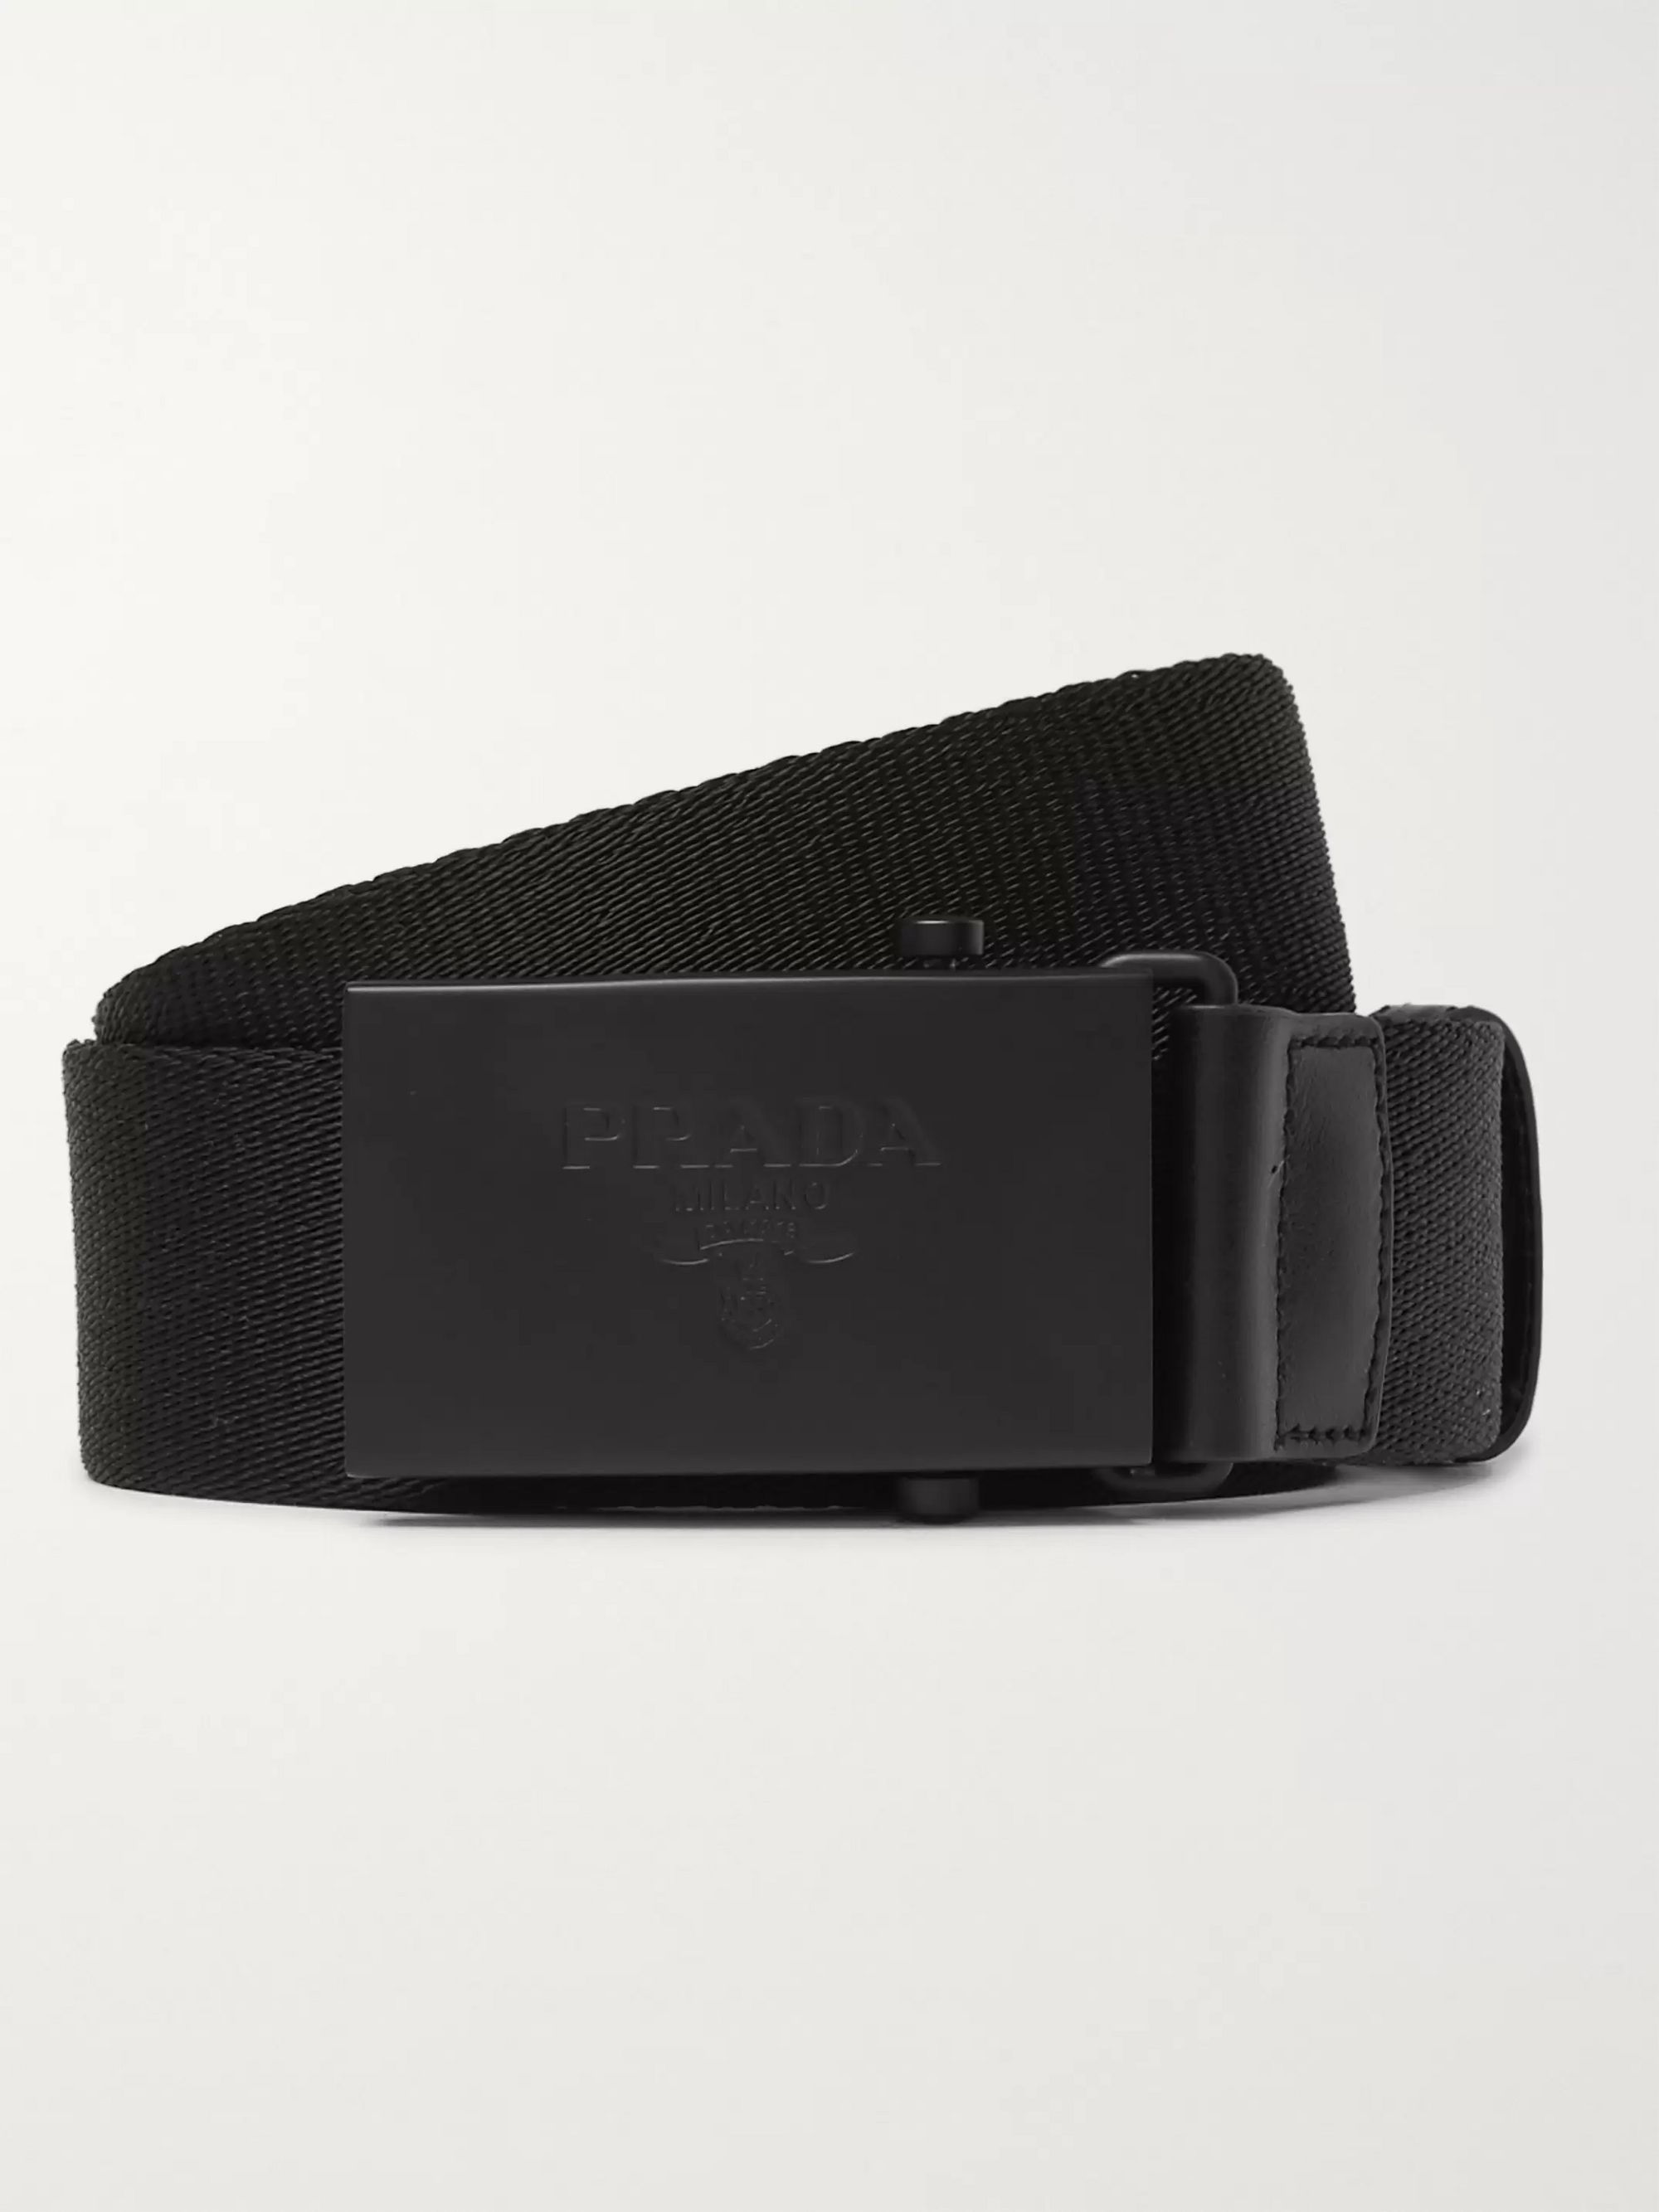 Prada 3.5cm Black Leather-Trimmed Webbing Belt